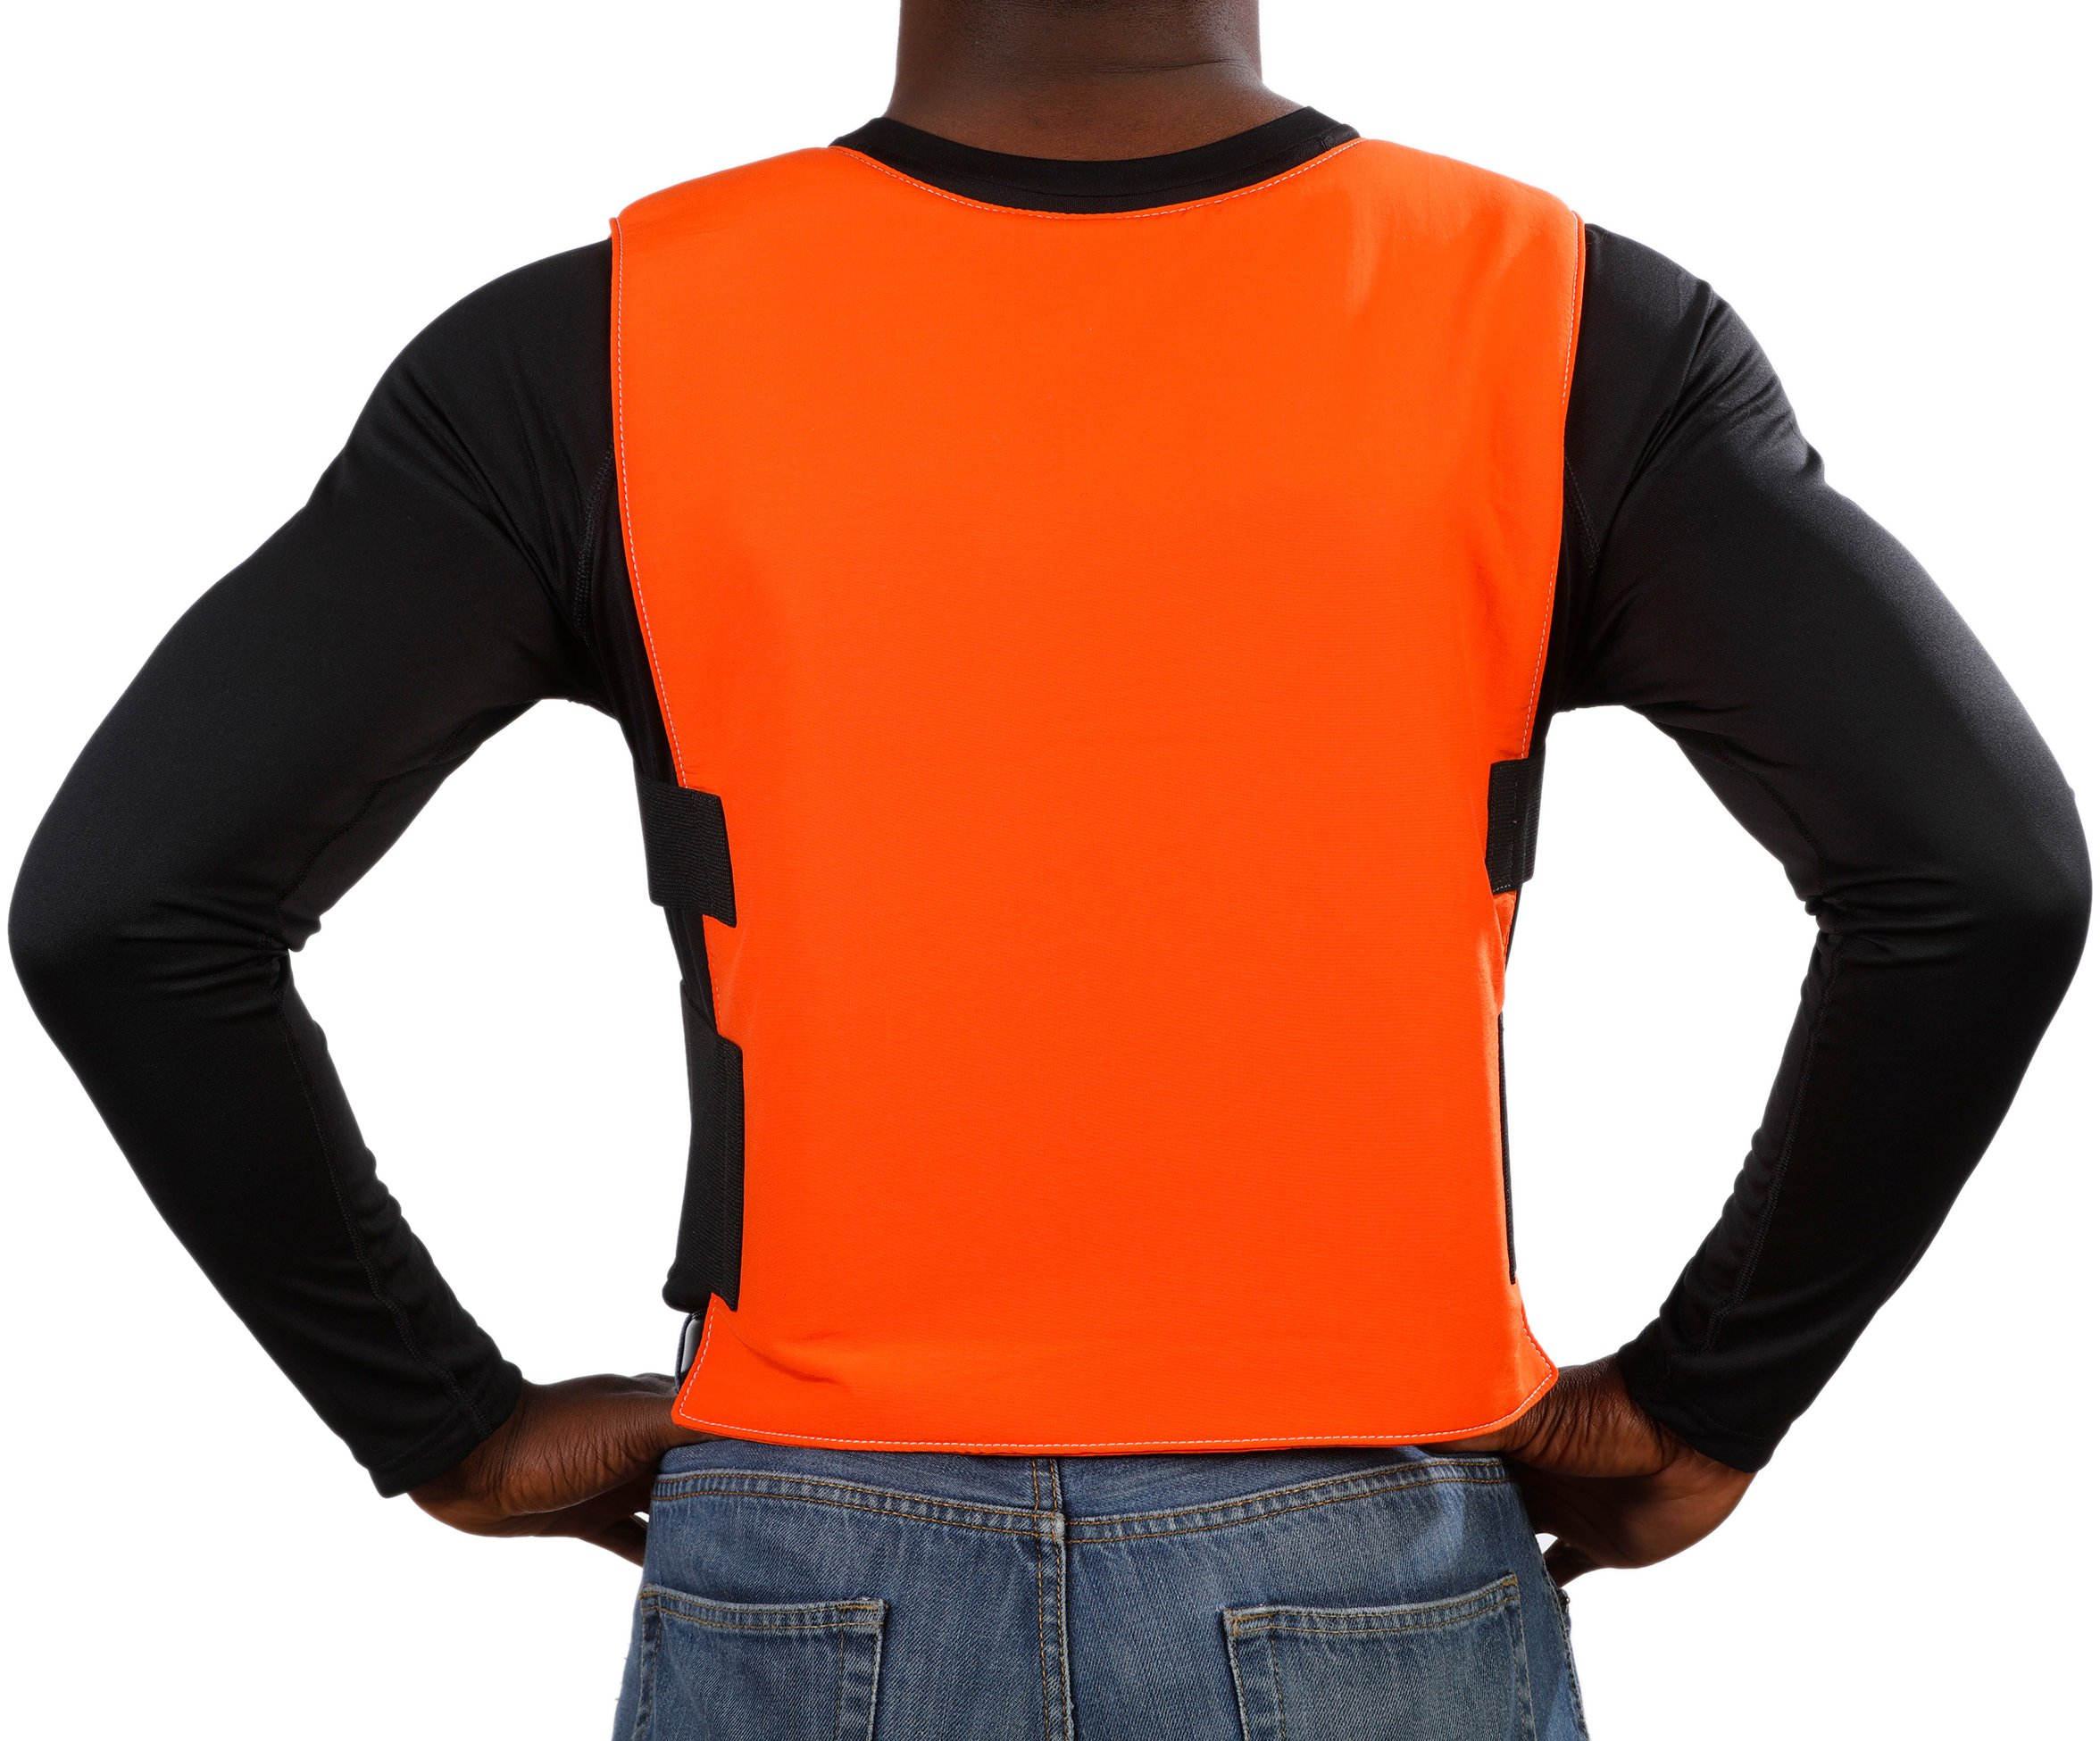 Glacier Tek Sports Cool Vest with Set of 8 Nontoxic Cooling Packs Orange by Glacier Tek (Image #4)